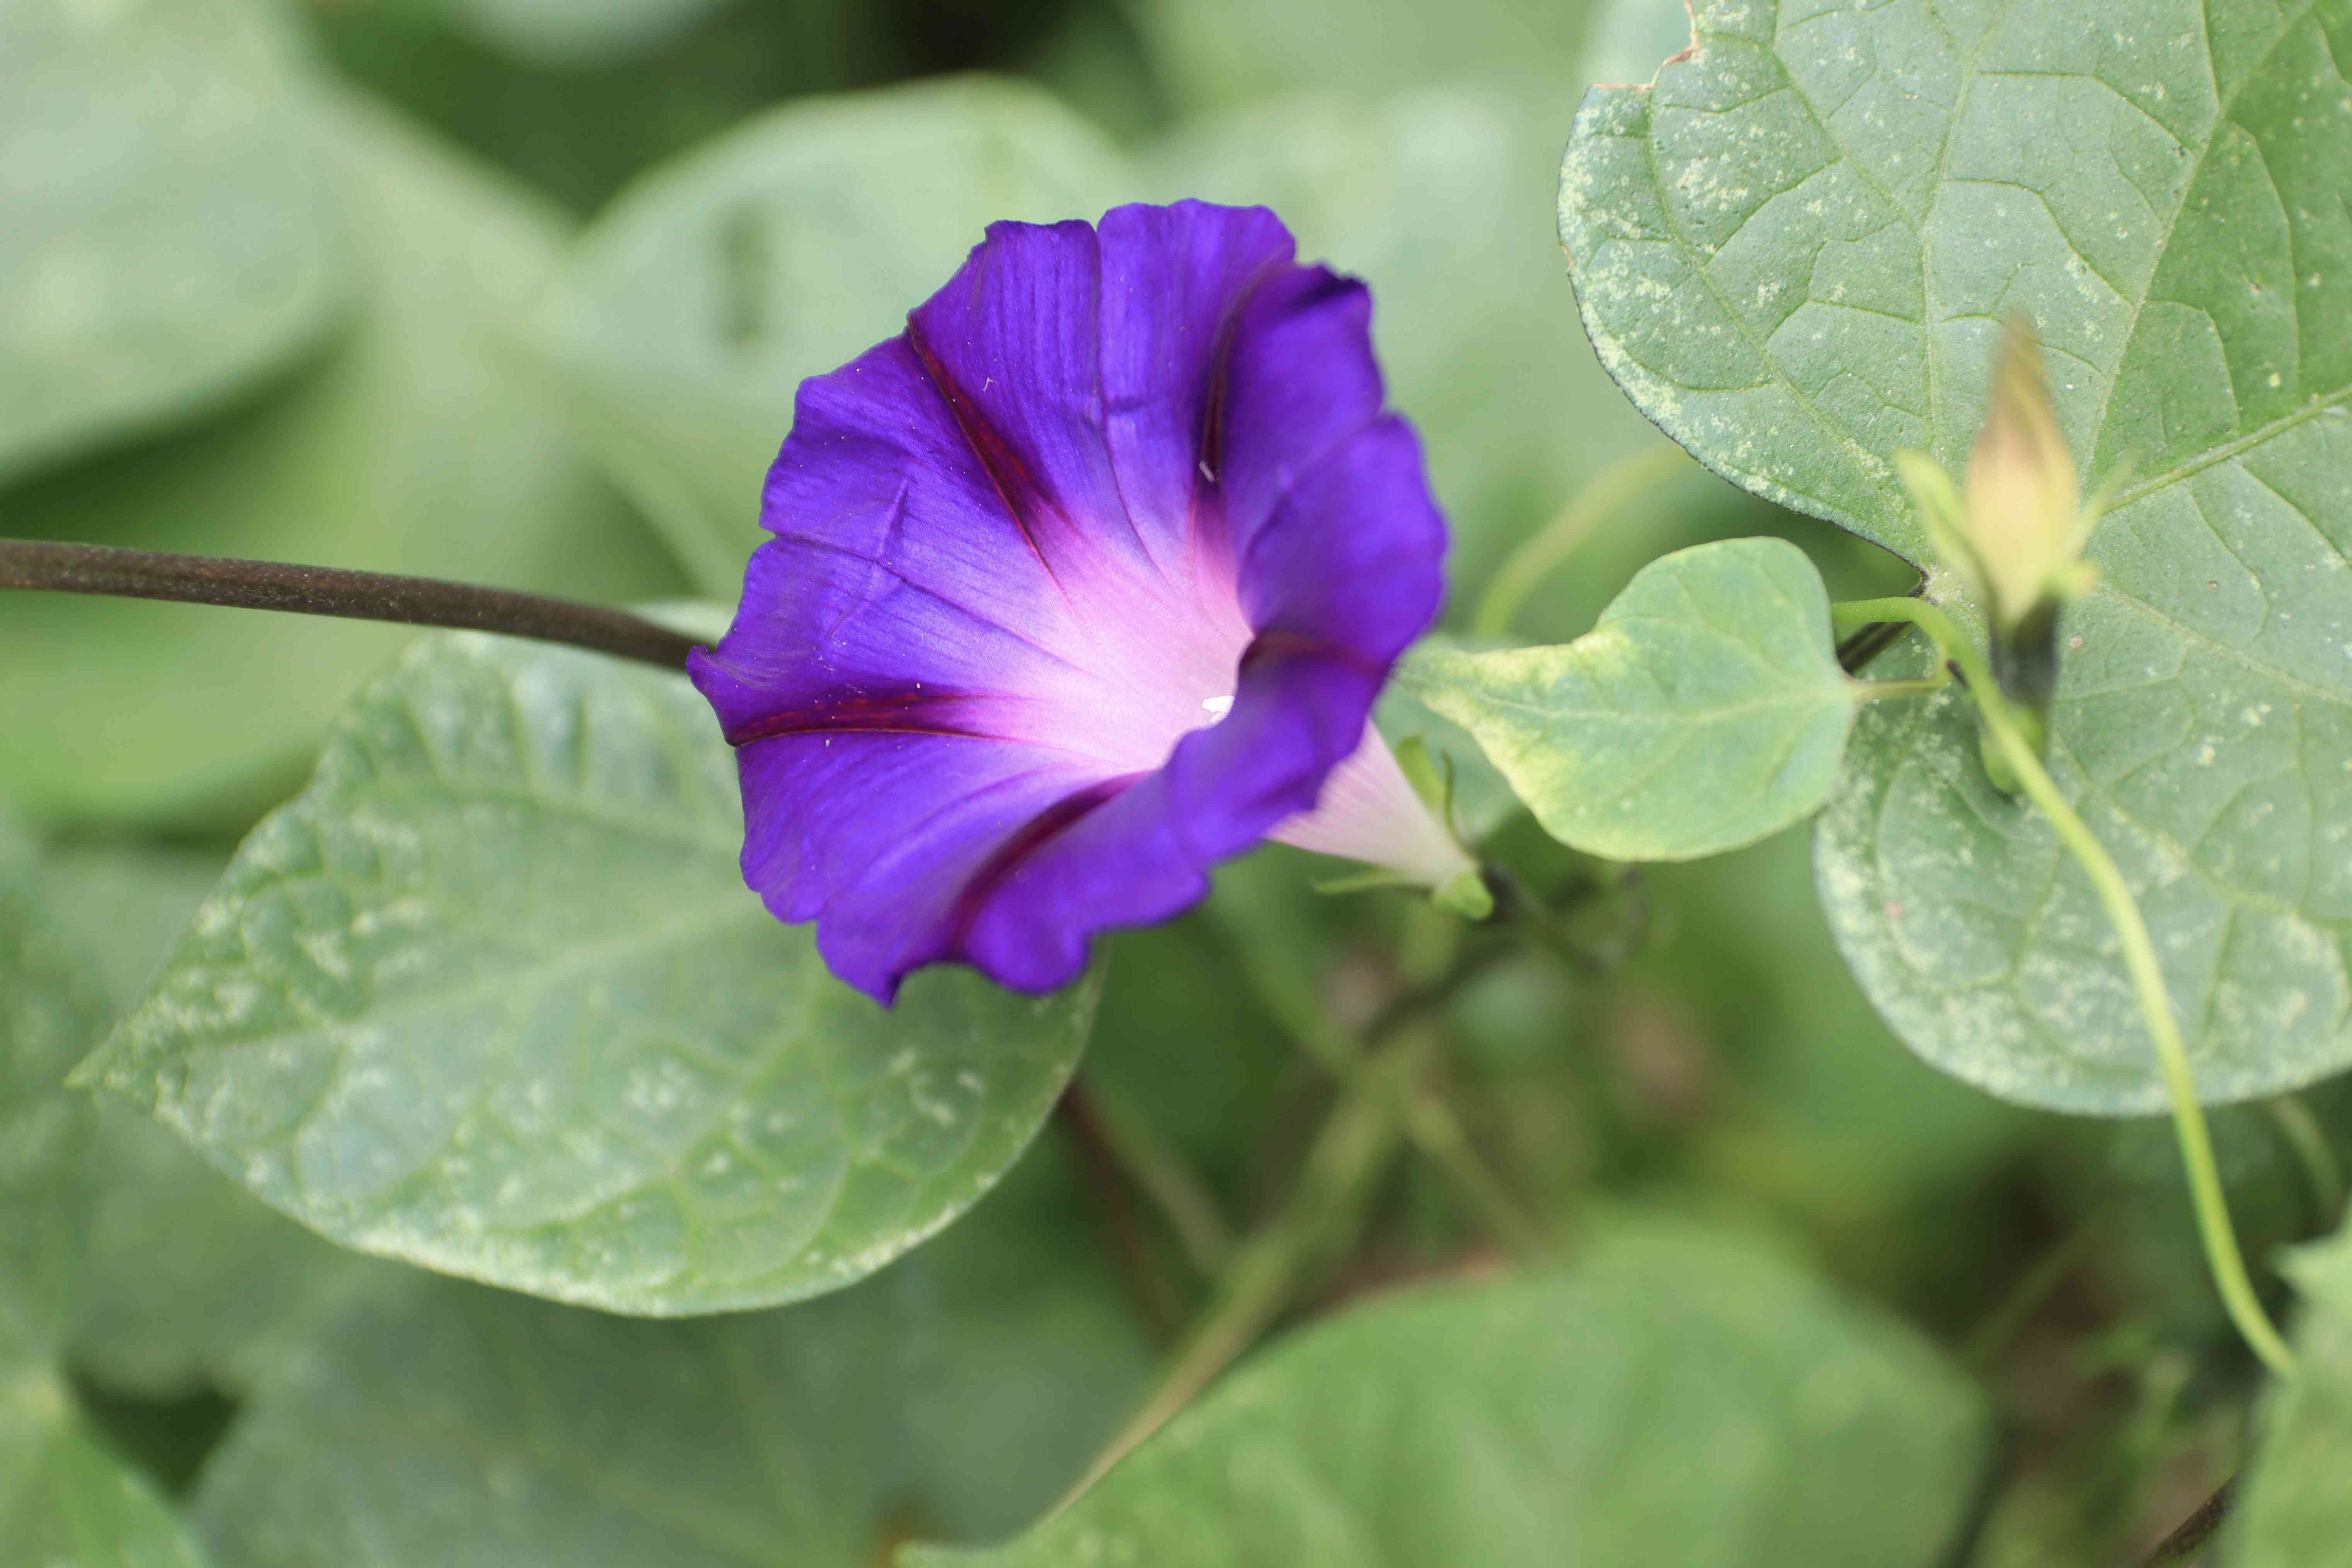 Purple Morning Glory Flower on a Sunny Day